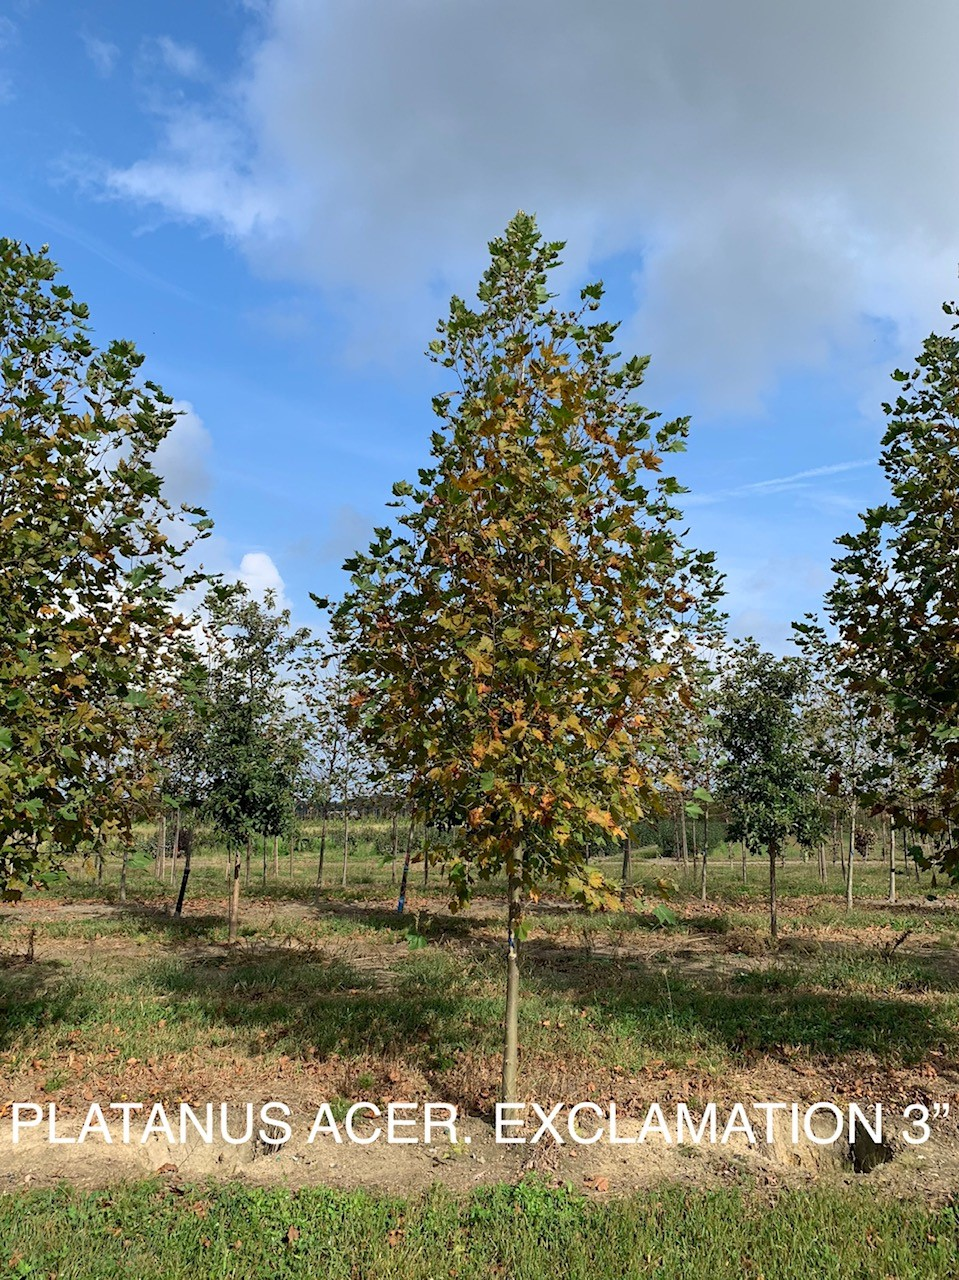 platanus acer exclamation.jpg